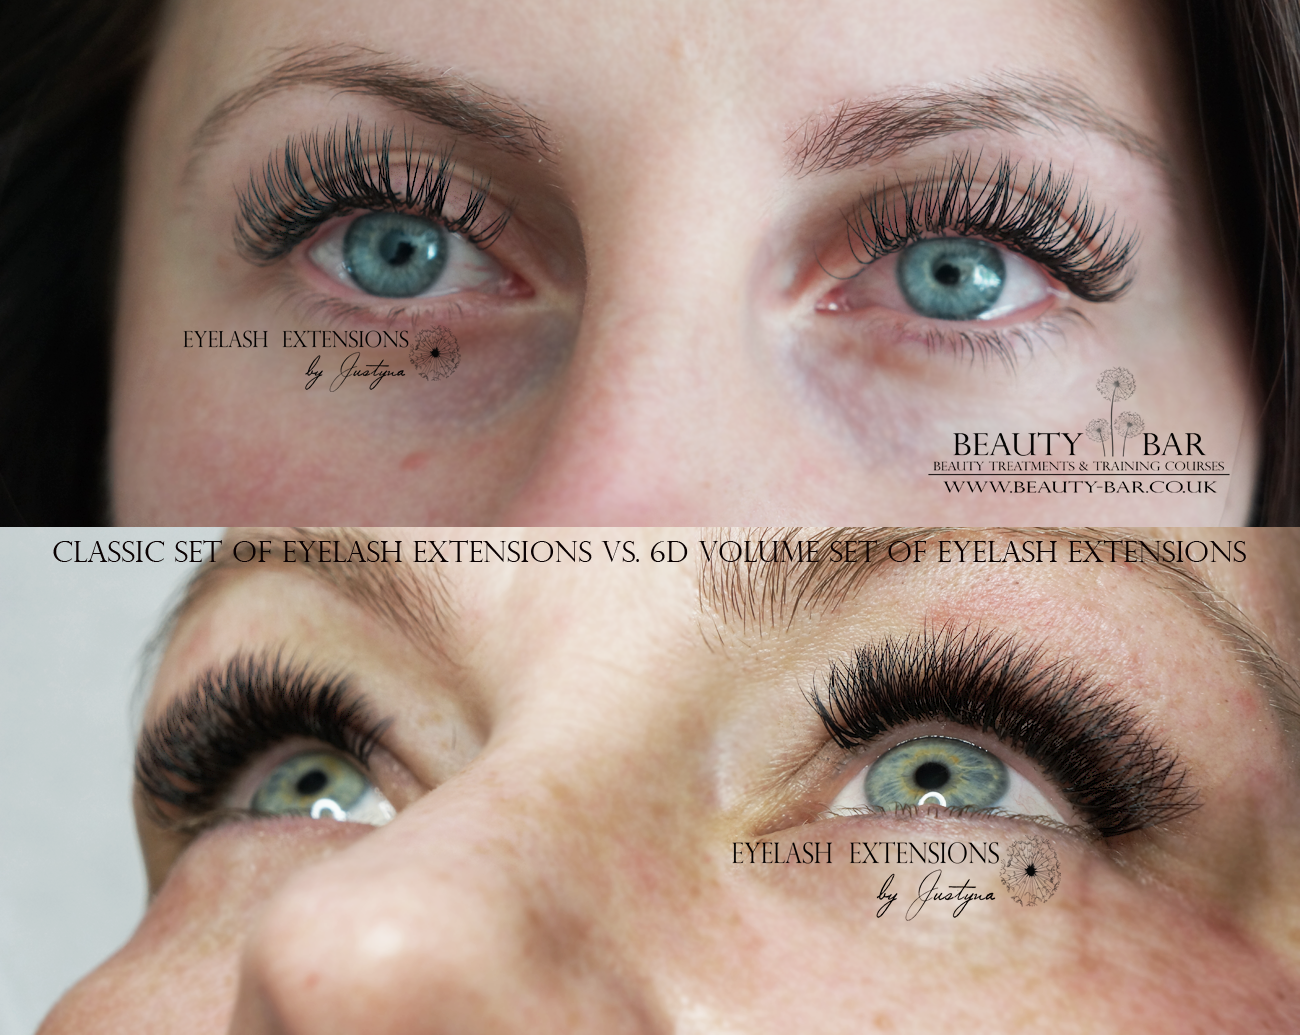 cab2c79cf46 Difference between classic full set of individual eyelash extensions (200  lashes per set) and volume 6D set of eyelash extensions (1200 lashes per set )